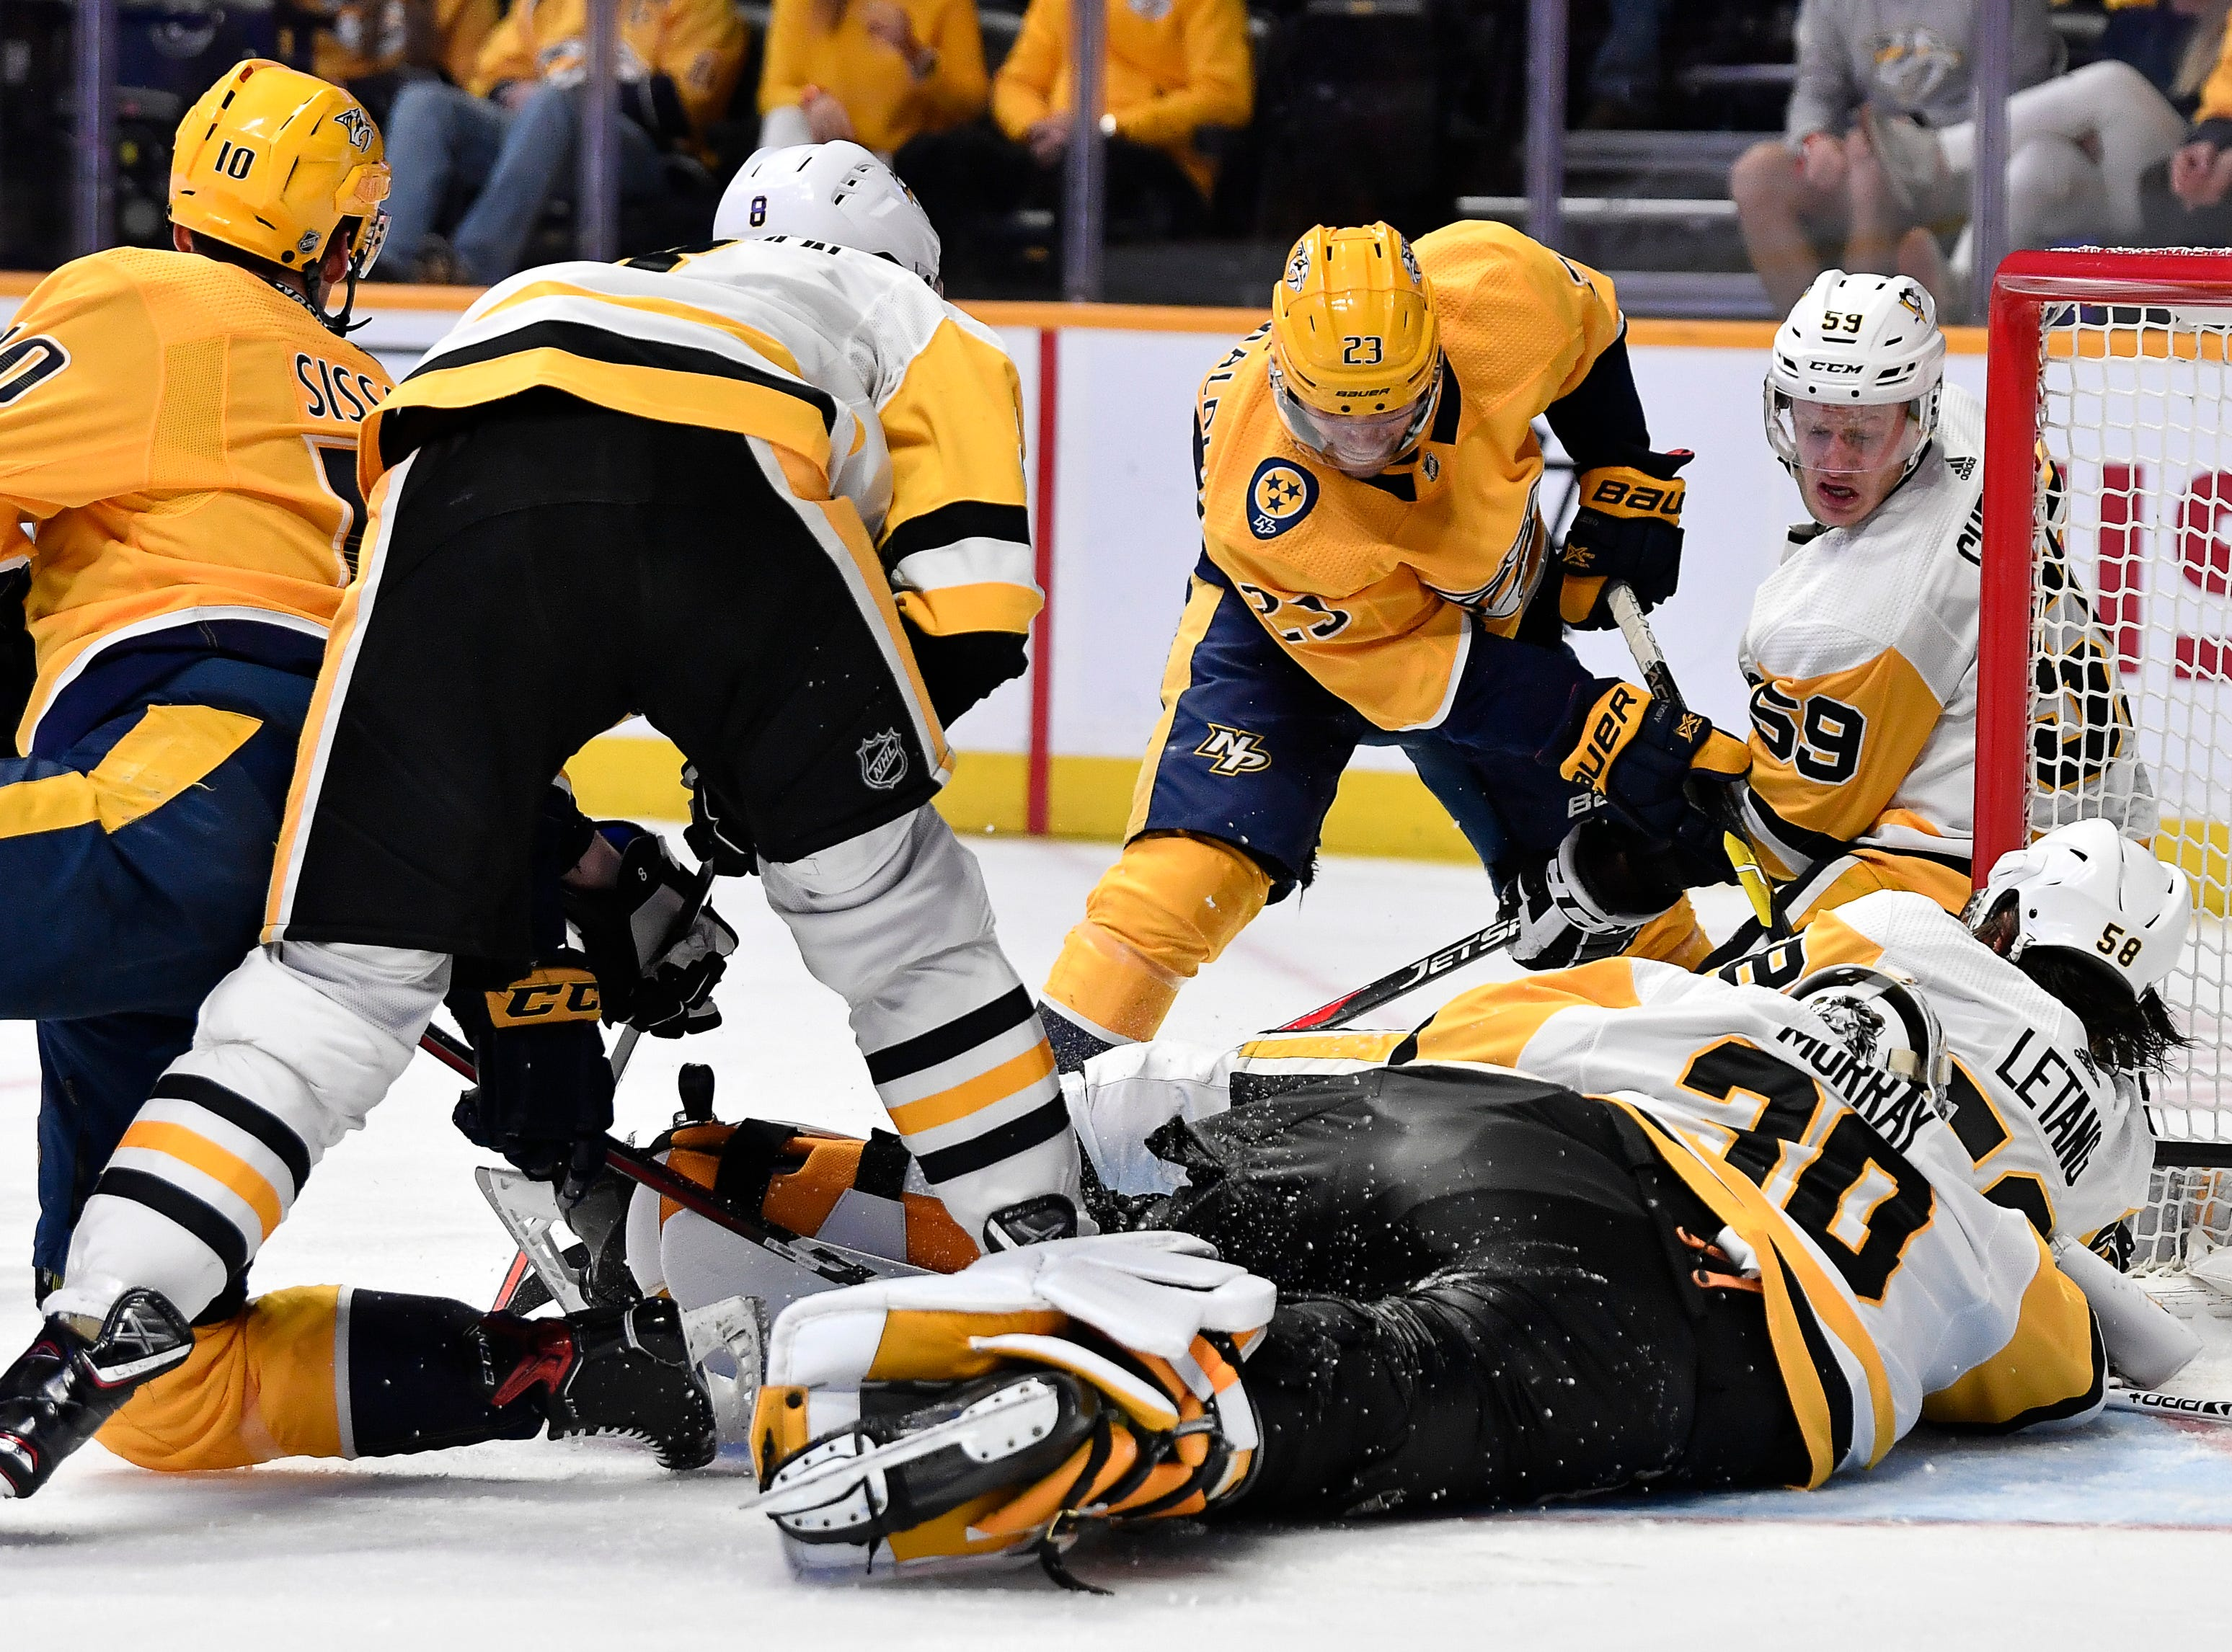 Penguins goaltender Matt Murray (30) and left wing Jake Guentzel (59) defend the goal against the Predators during the third period at Bridgestone Arena Thursday, March 21, 2019 in Nashville, Tenn.